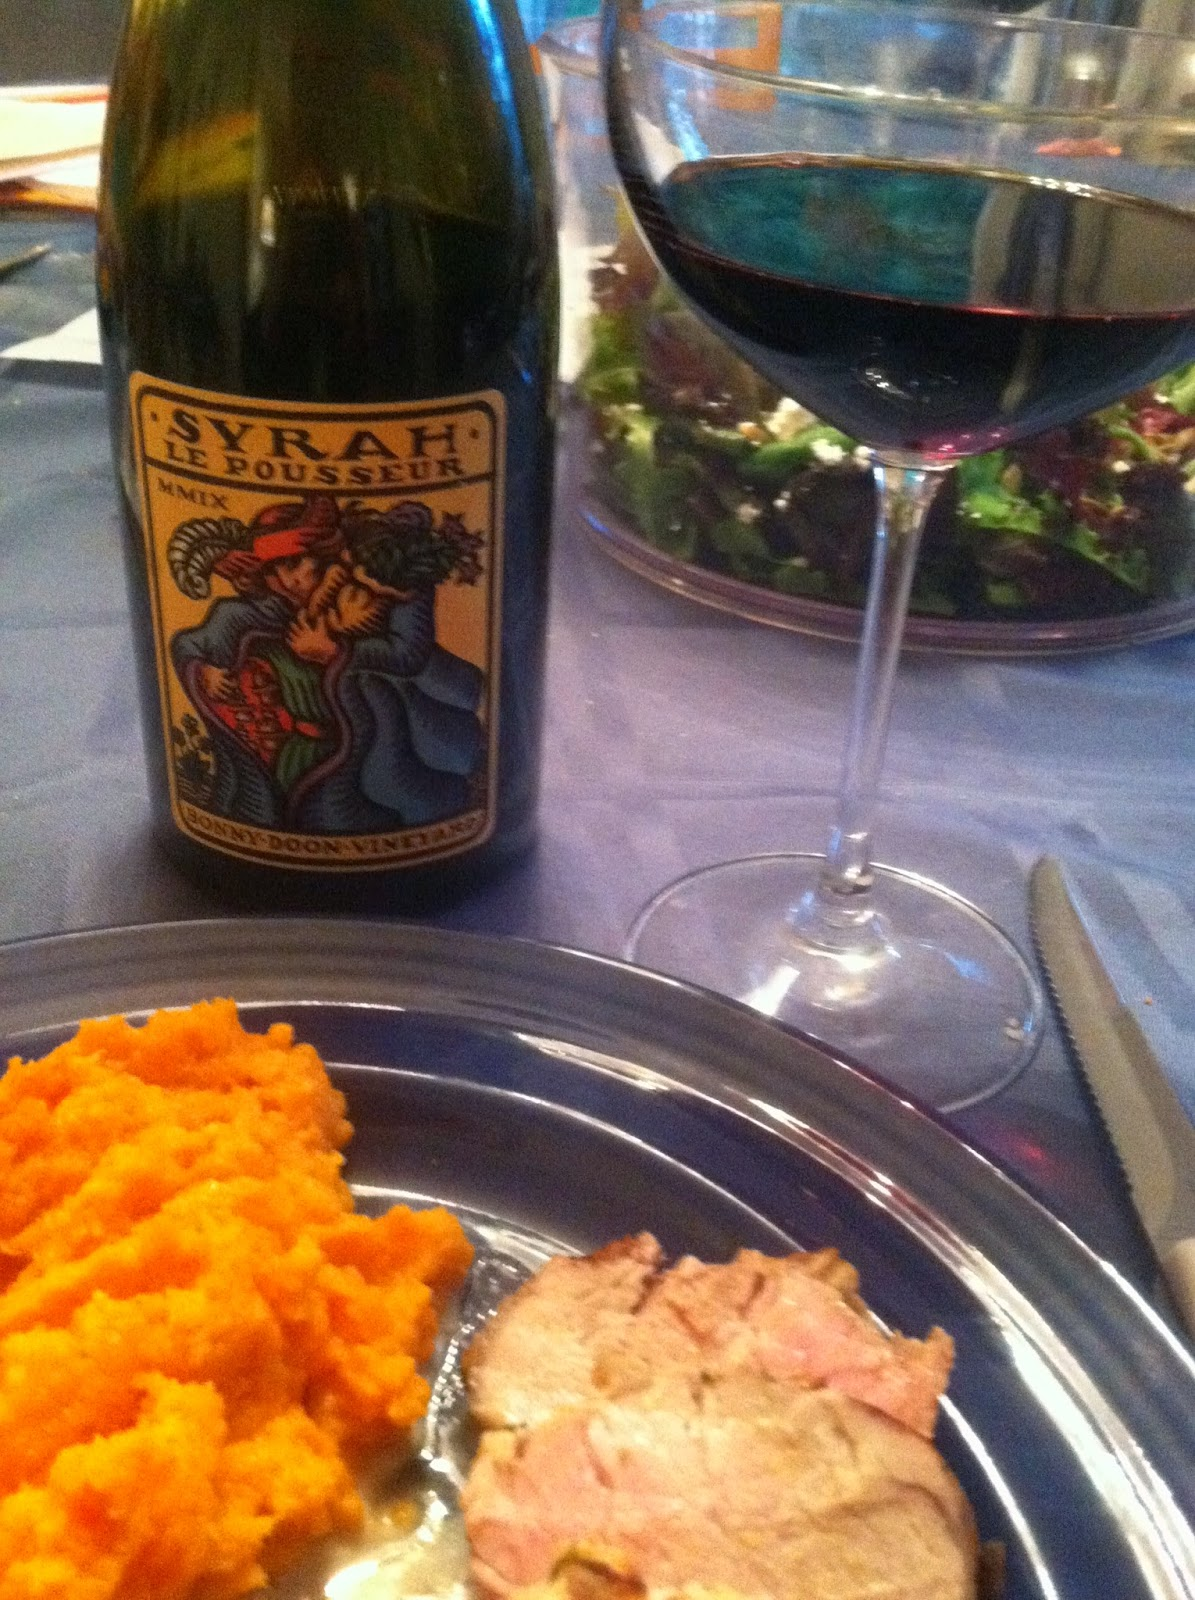 Bonny Doon Syrah paired with Grilled Pork Tenderloin for #winePW. Cooking Chat recipe